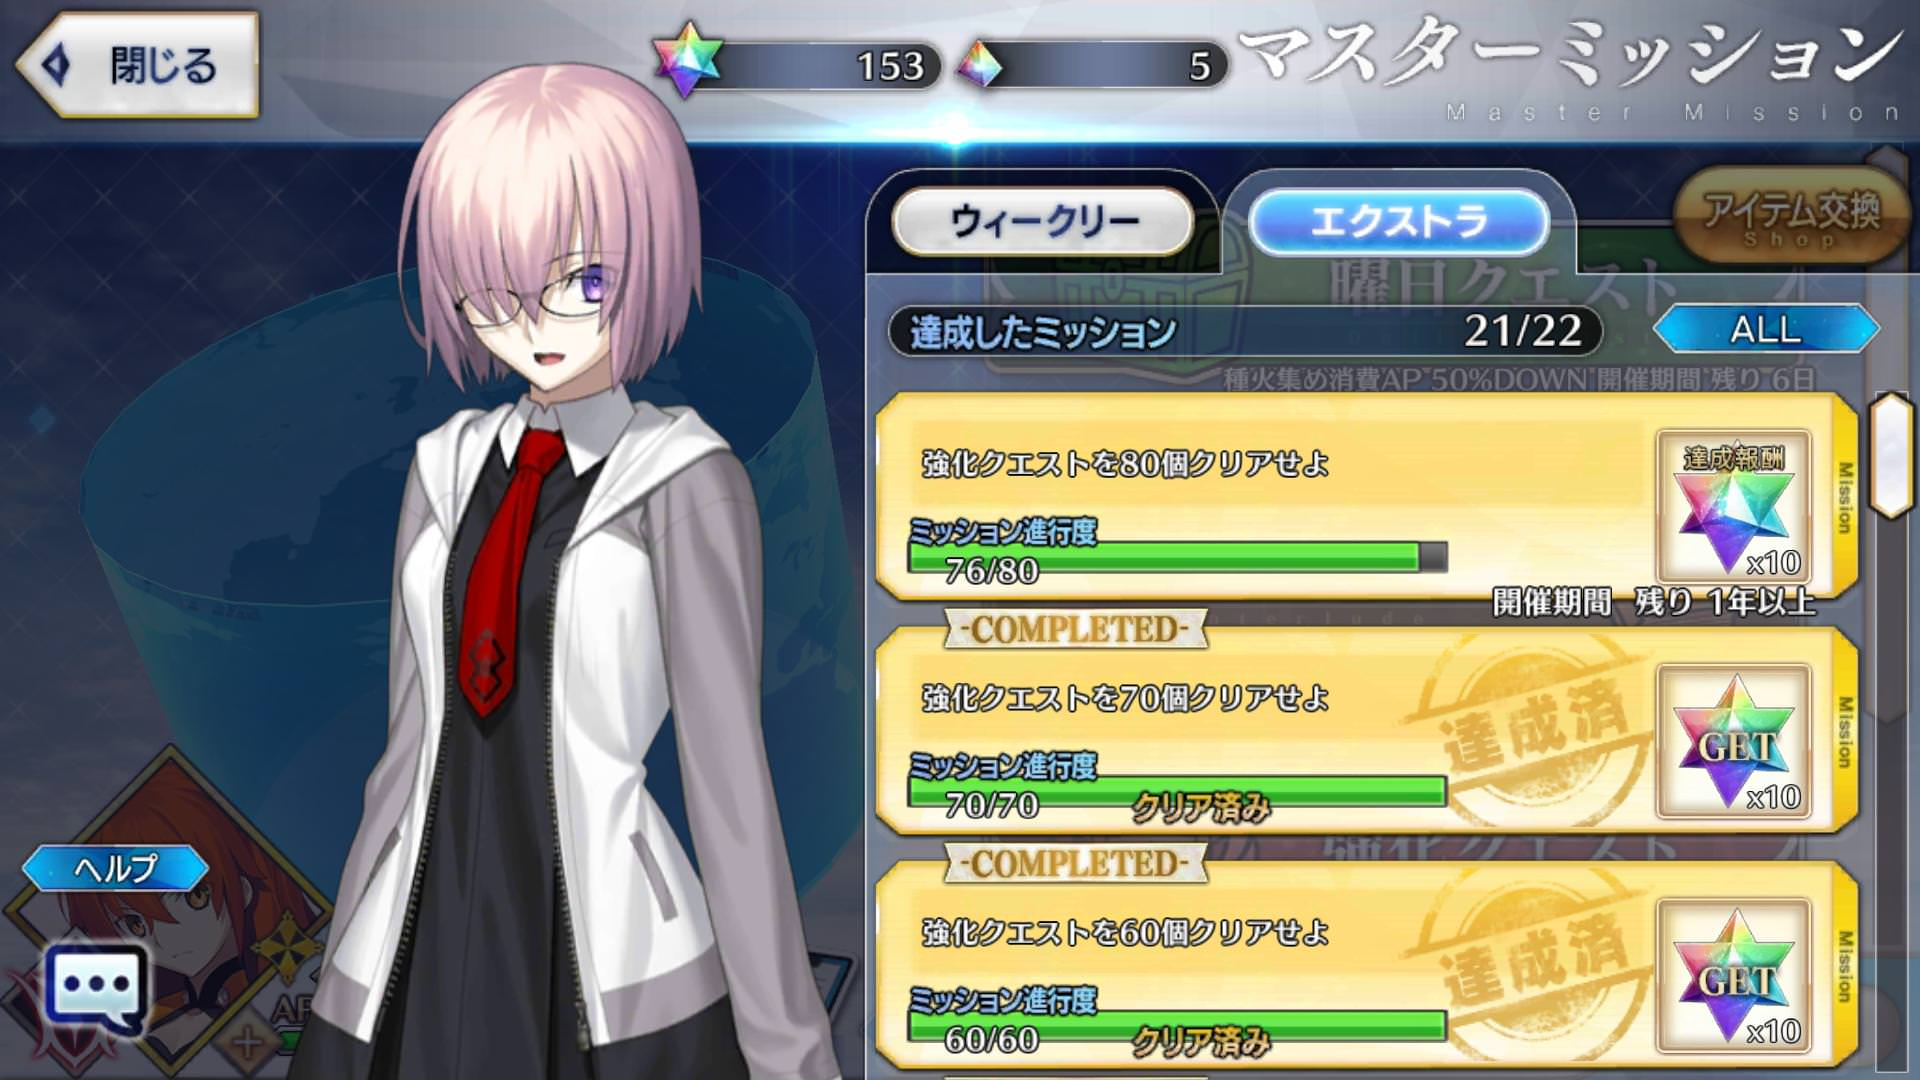 Fate/Grand Order] All-around Discussions v2 (3750